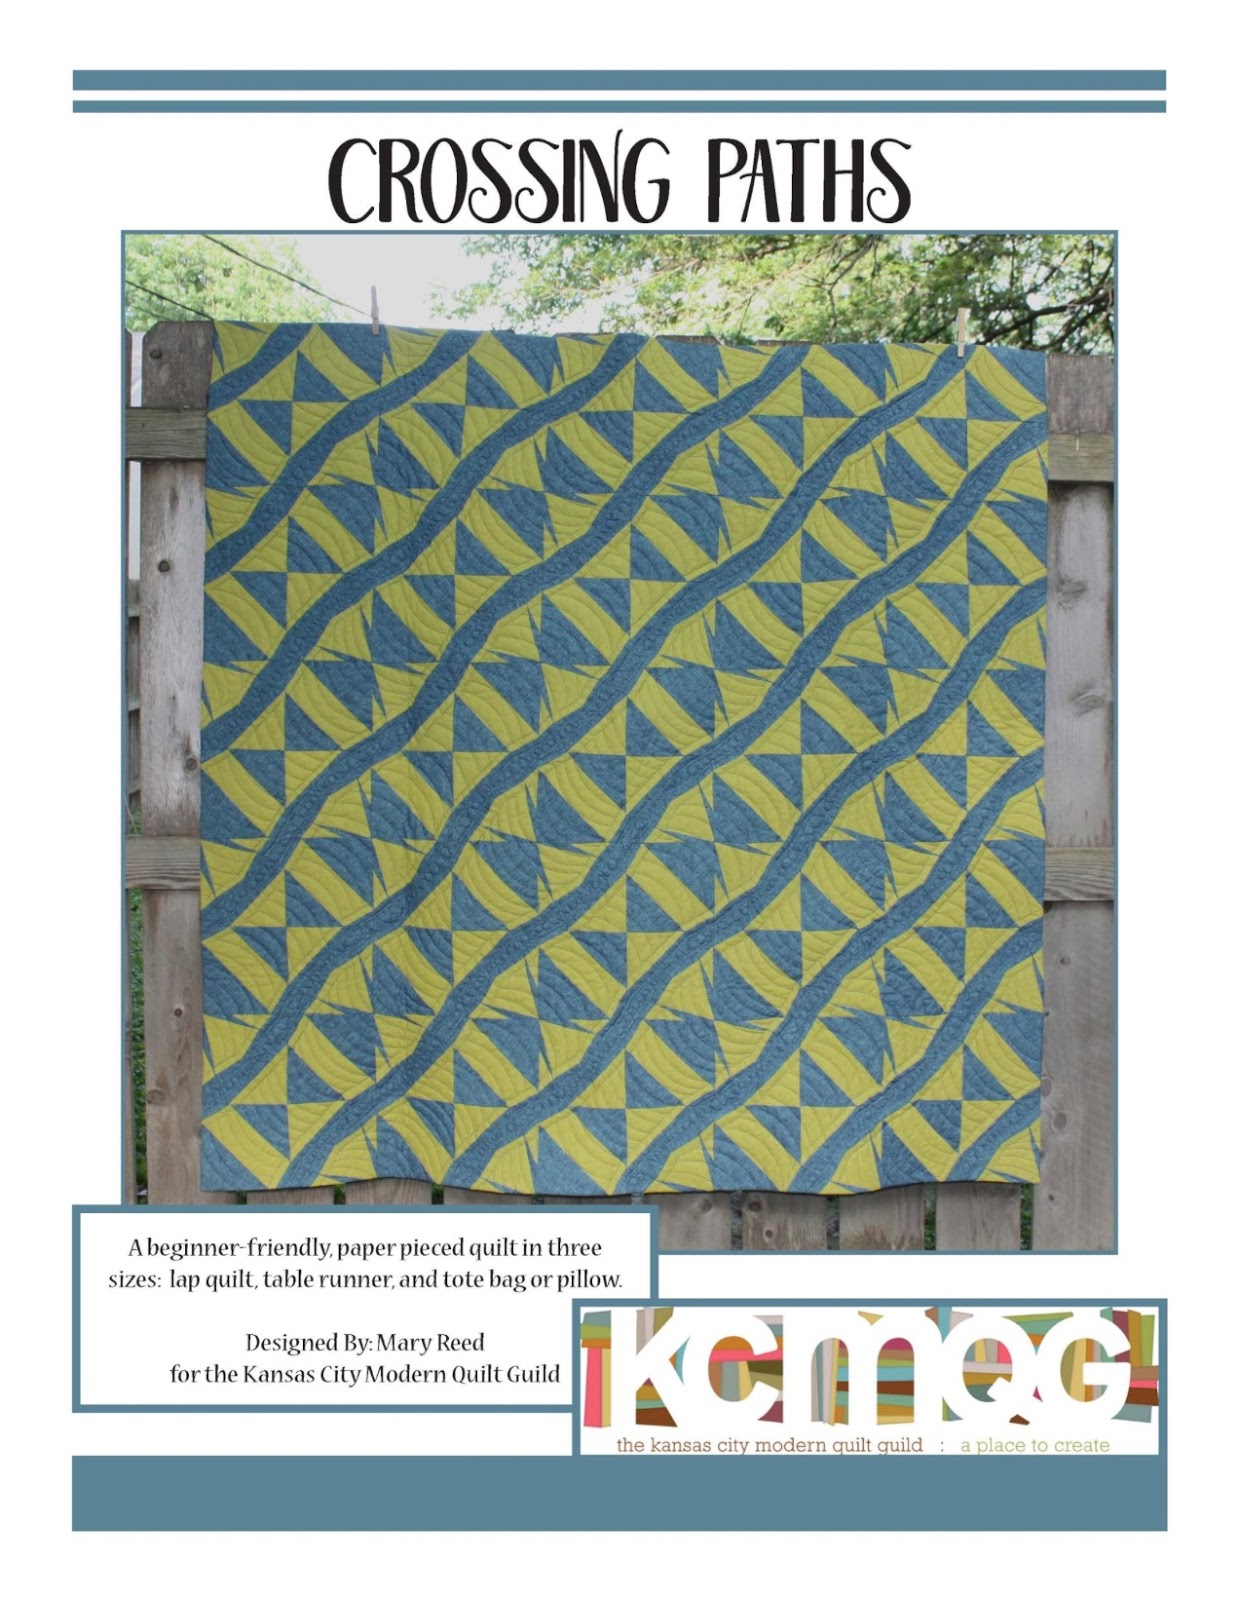 Crossing Paths Pattern Now Available! Click for purchasing info.